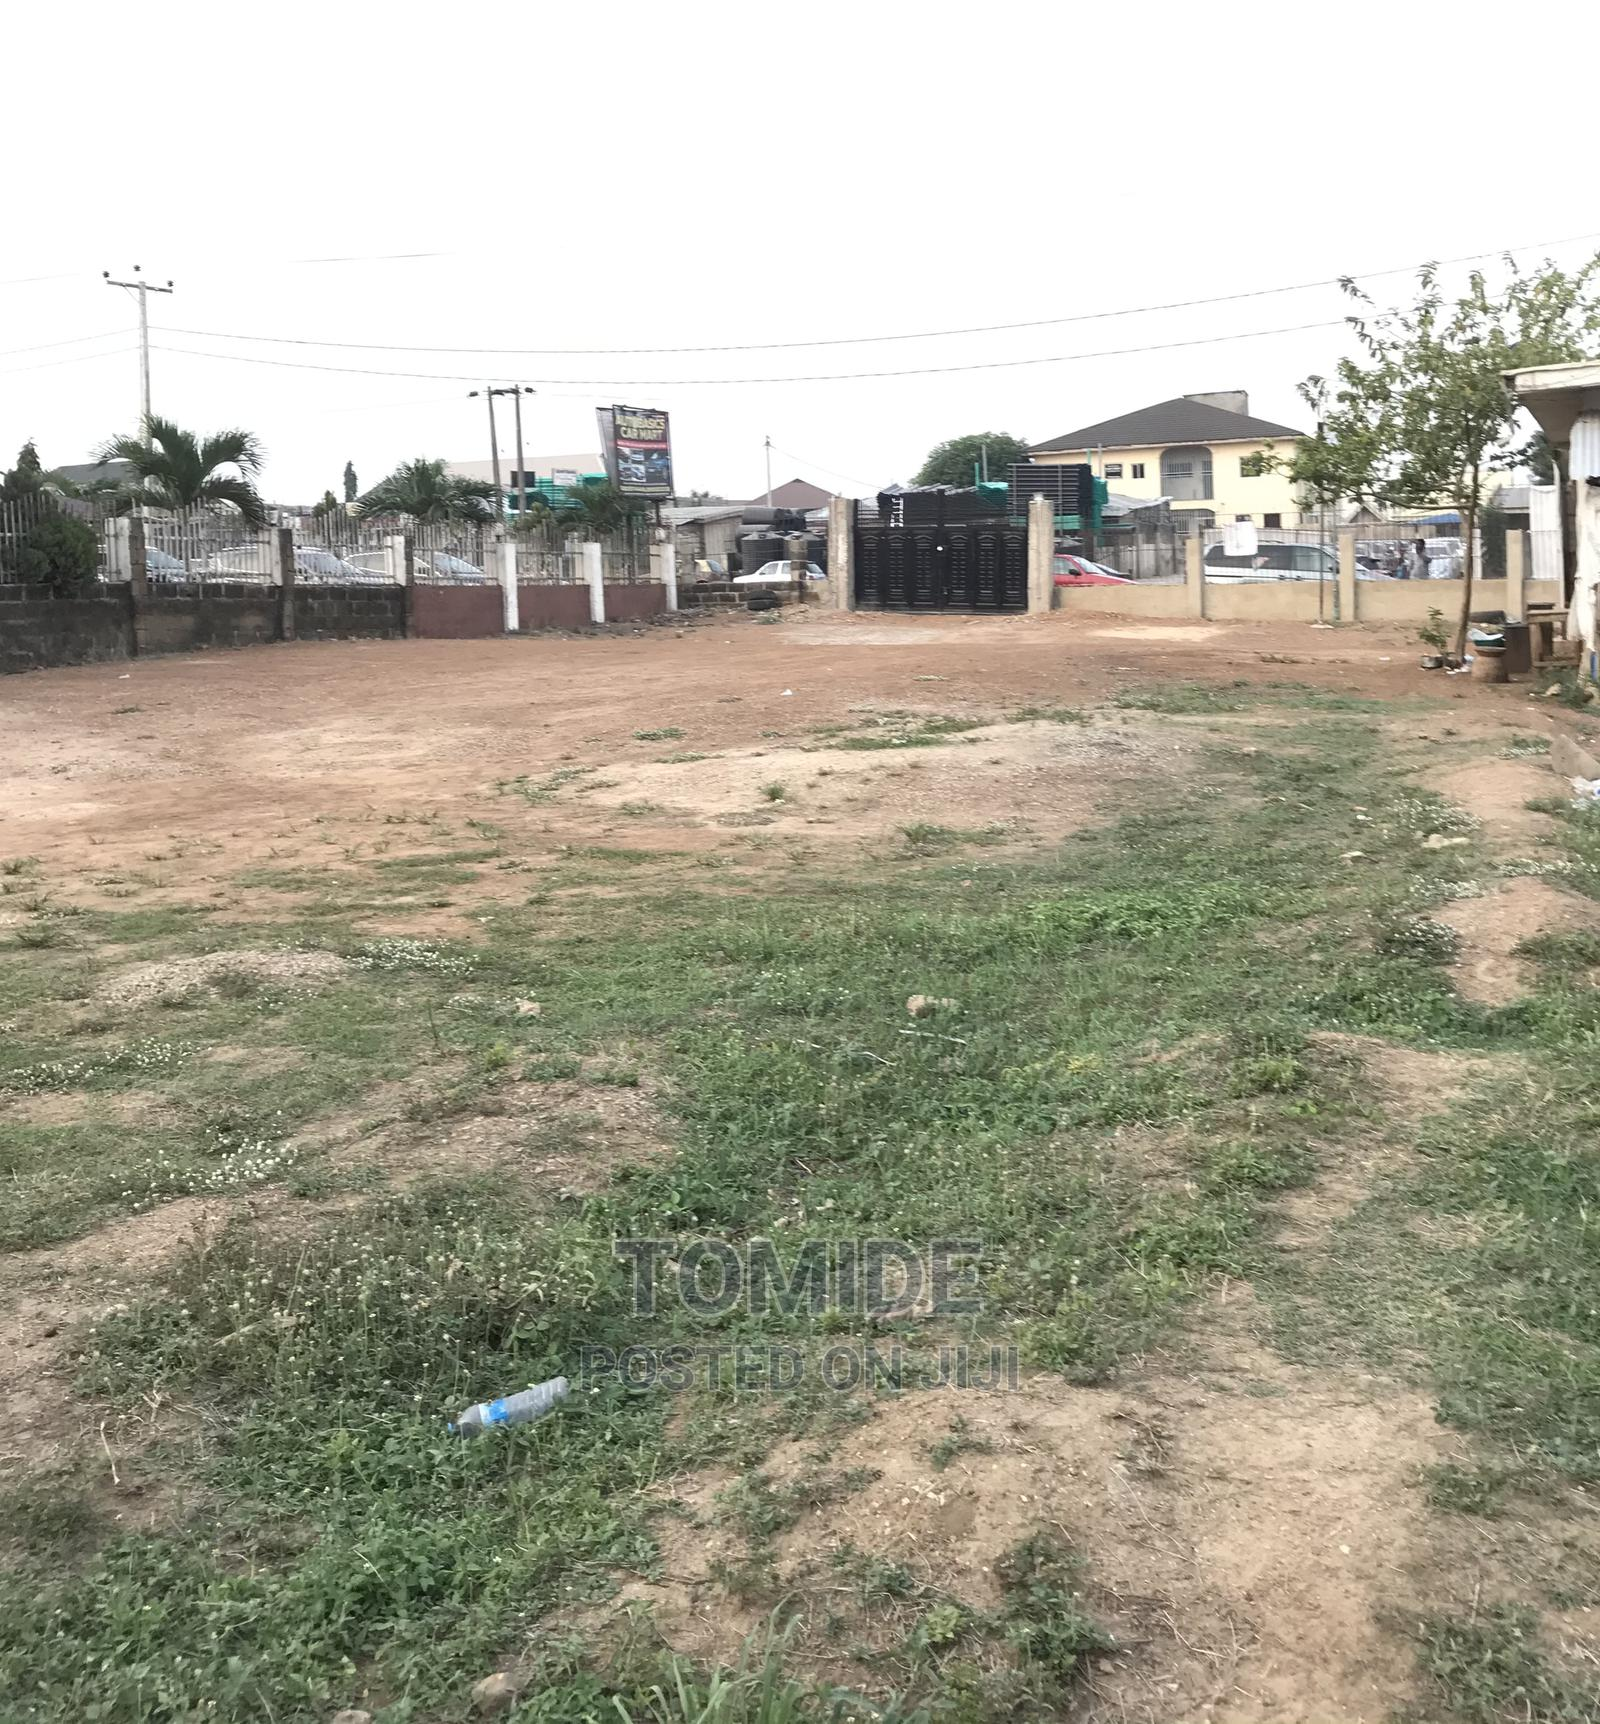 Commercial Land For Lease In A Good Location | Land & Plots for Rent for sale in Ibadan, Oyo State, Nigeria